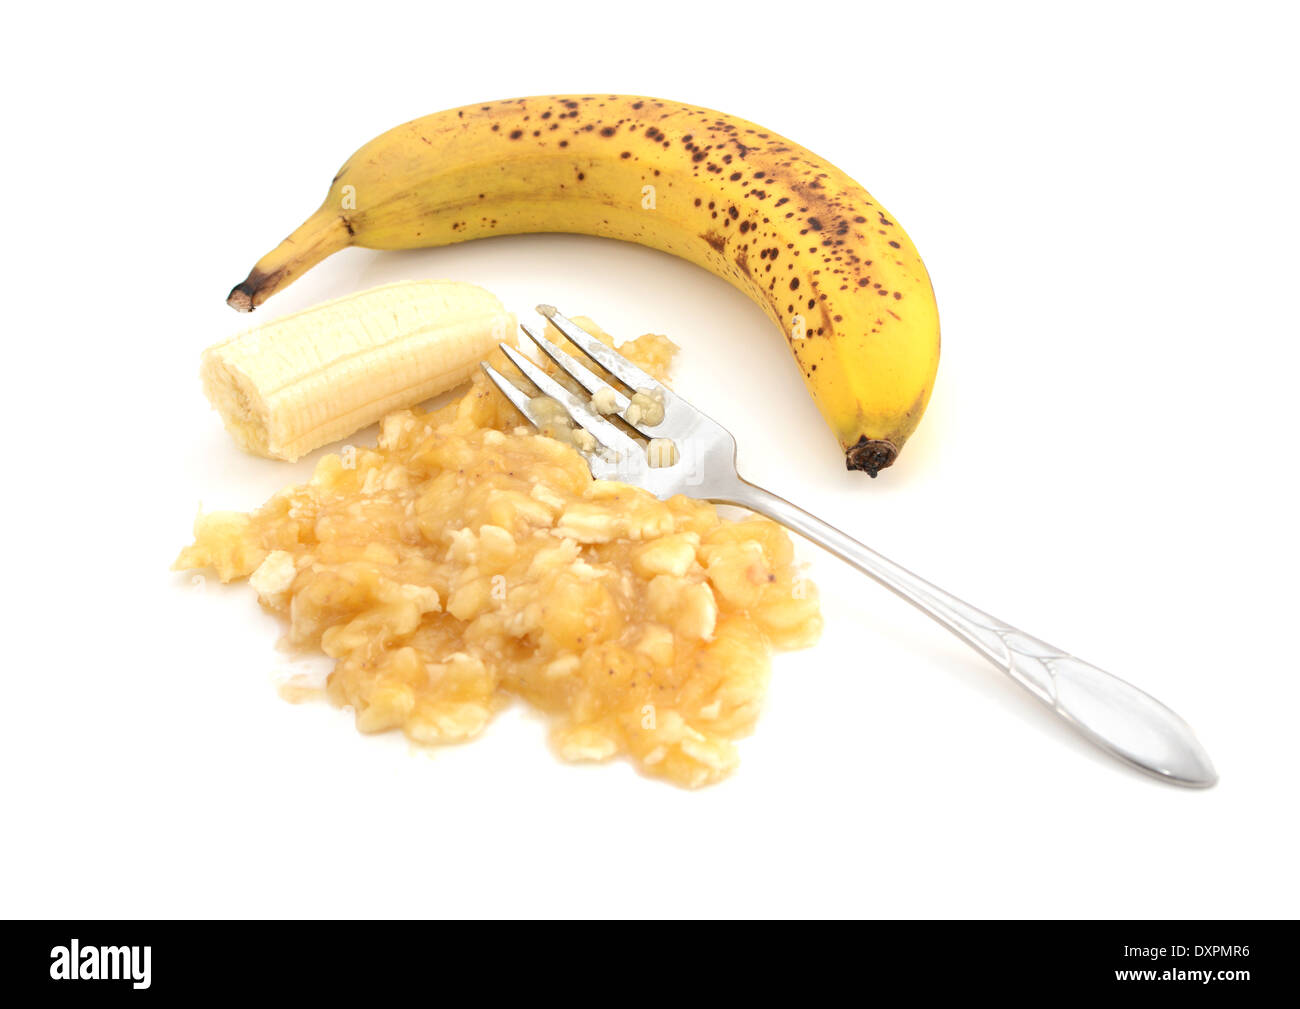 Overripe banana with a fork and pureed fruit, isolated on a white background - Stock Image